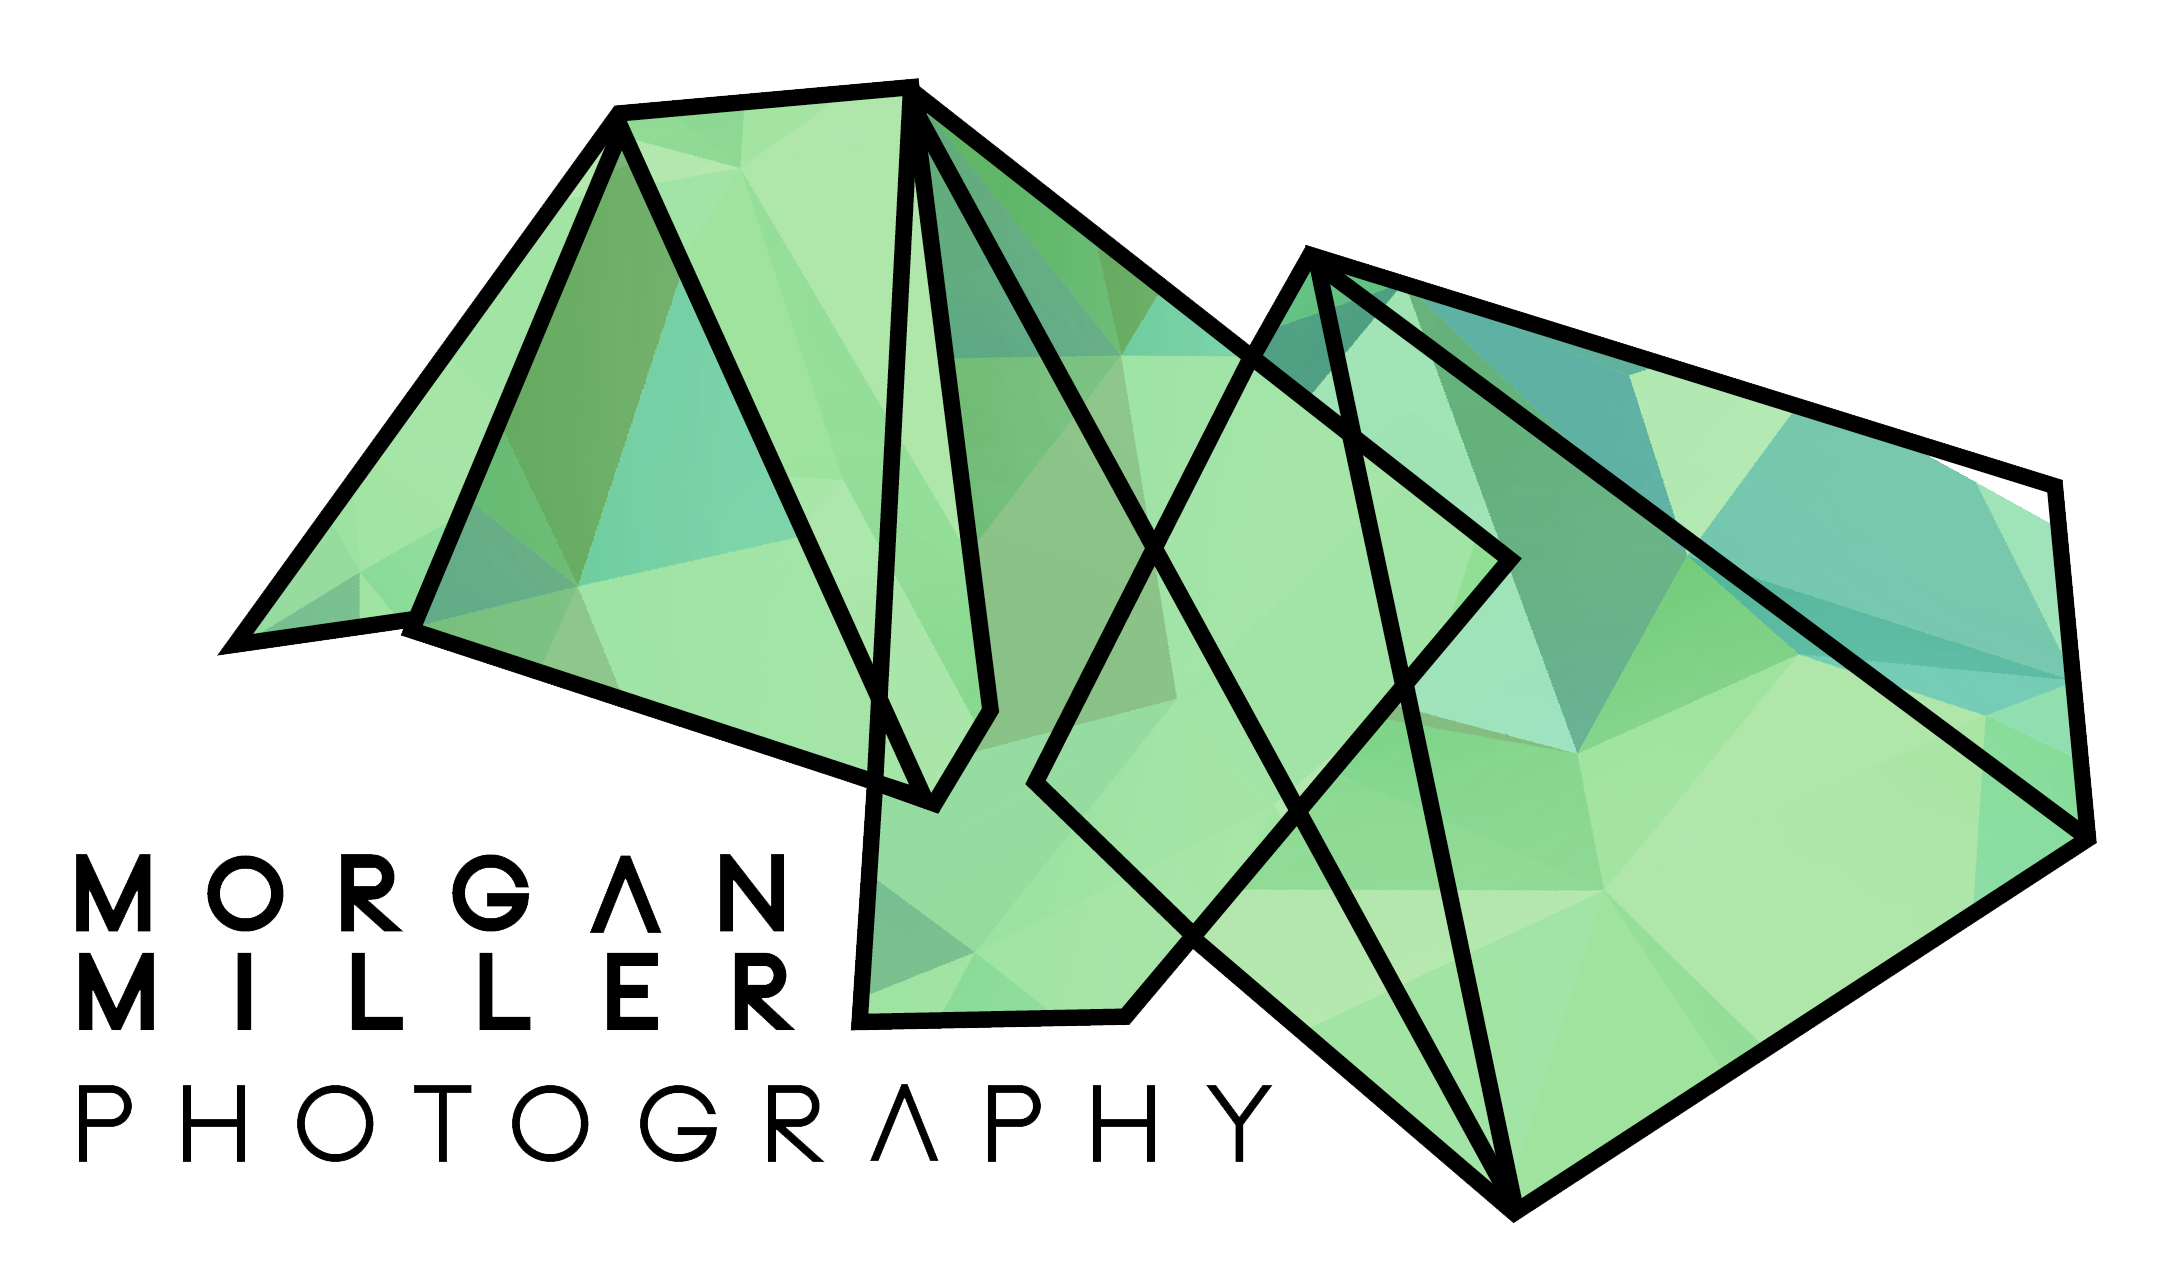 Morgan Miller Photography